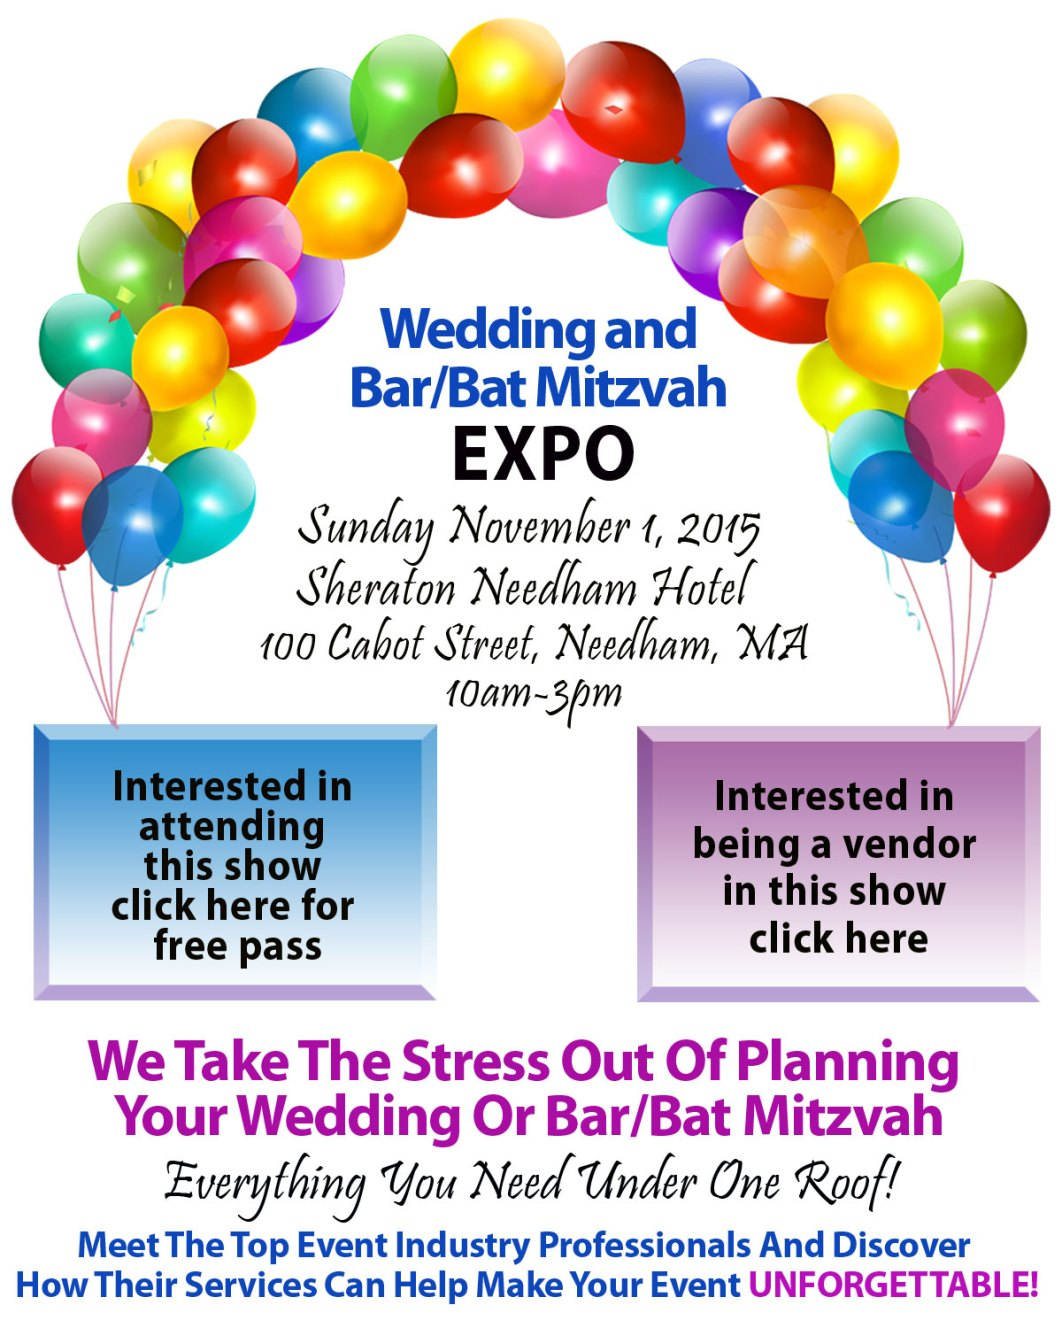 Wedding and Bar/Bat Mitzvah Expo 2015